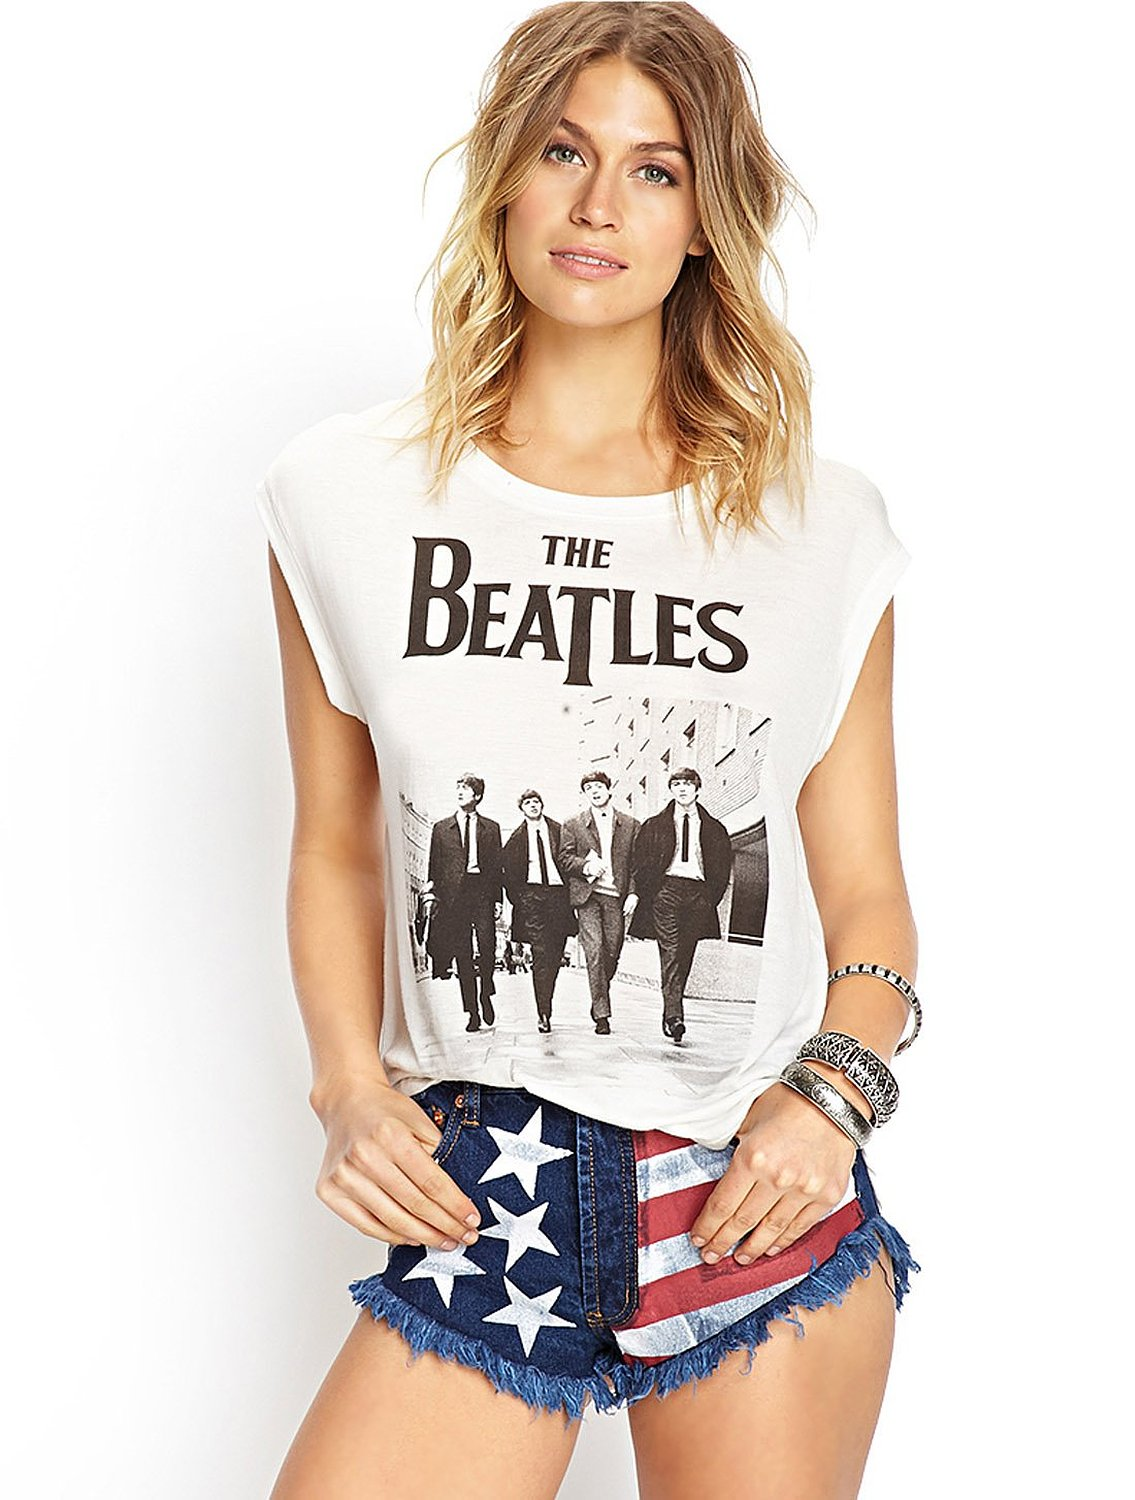 Stylishelf women's white the beatles print vest top shirt at amazon women's clothing store: